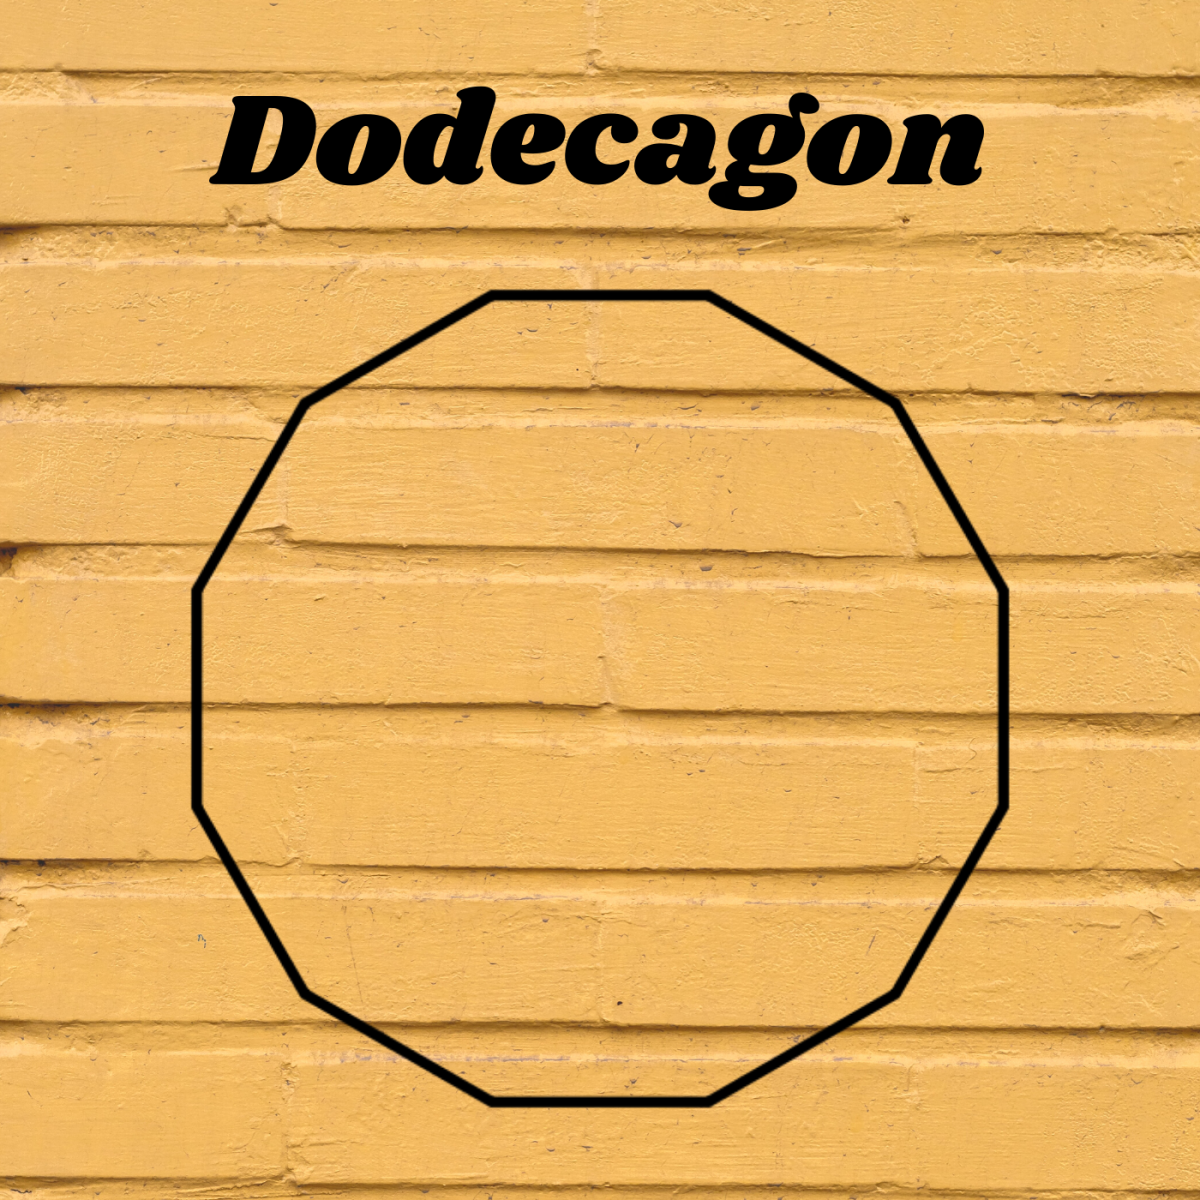 Dodecagons have 12 sides.